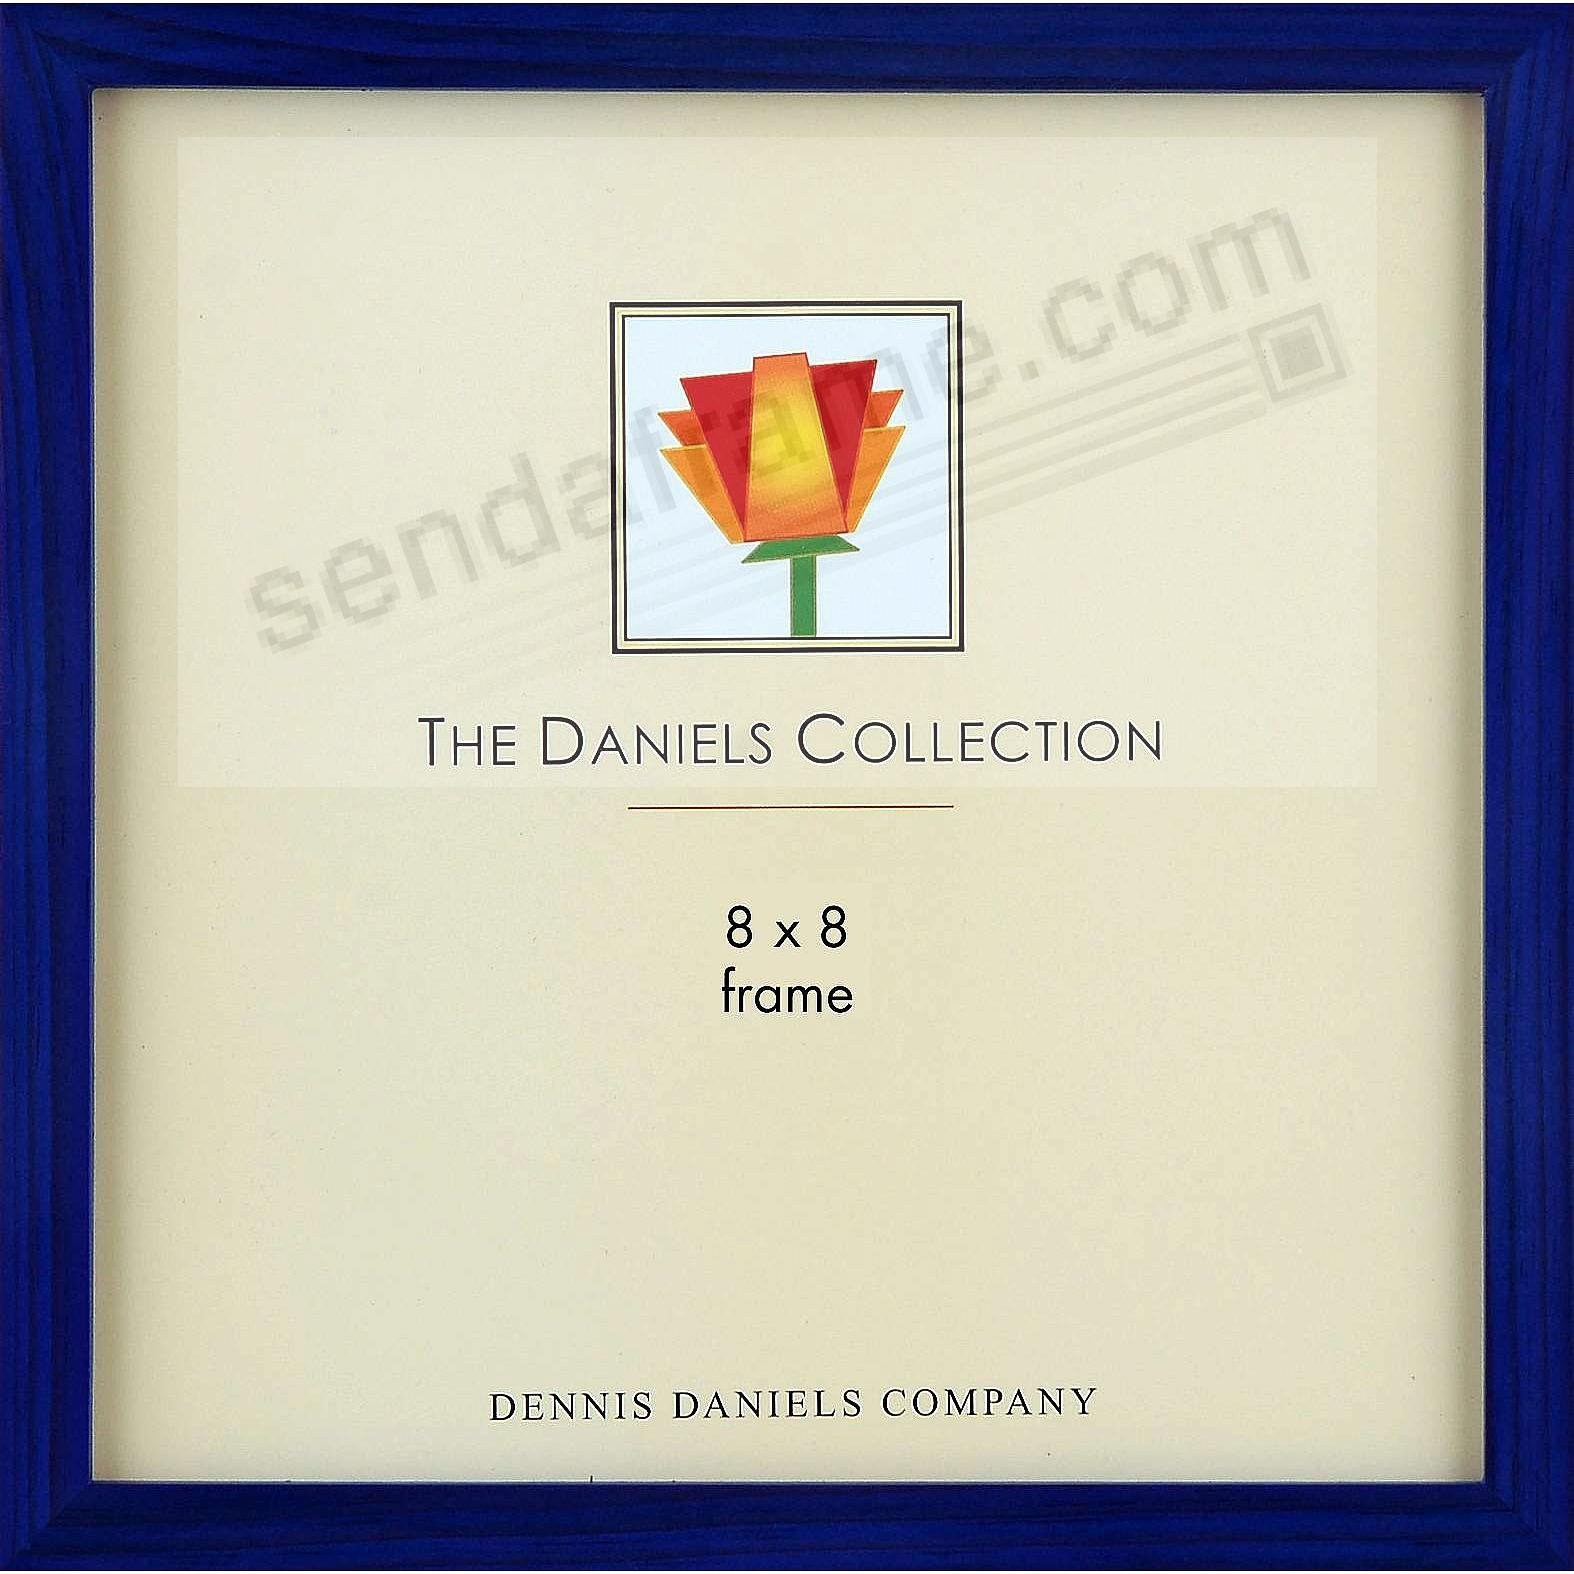 The Original DANIELS W41: Square Corner GALLERY WOODS Blue-Stain finish 8x8 frame by Dennis Daniels®